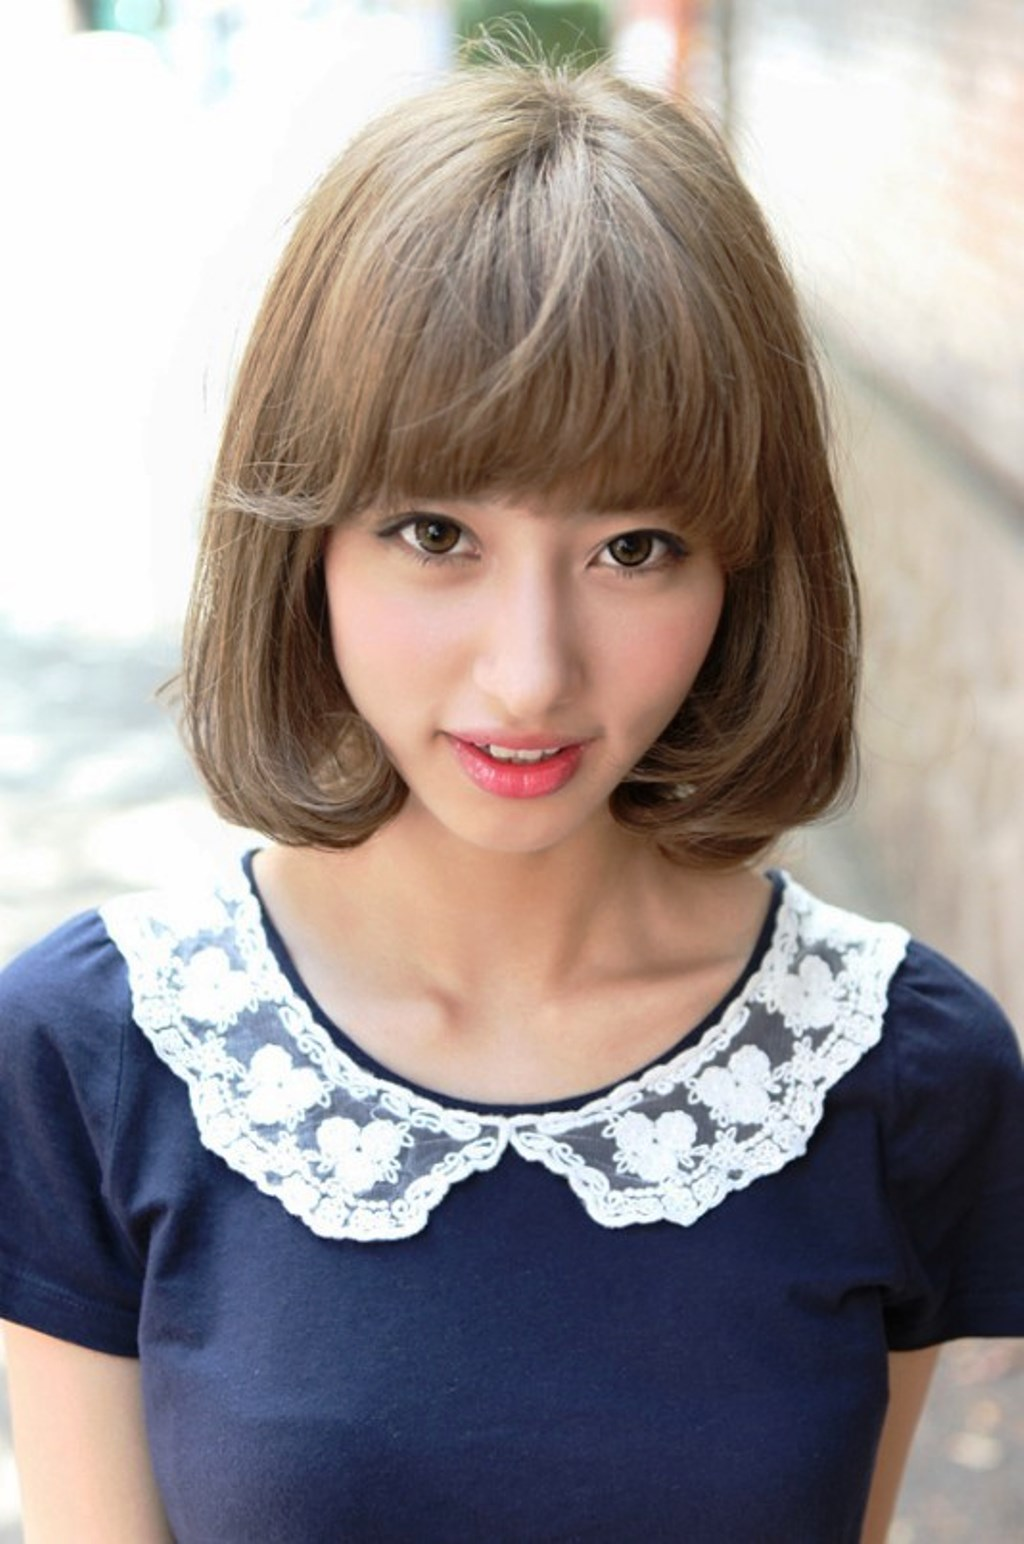 Pictures Of Cute Japanese Bob Hairstyle For Women - Bob hairstyle japan